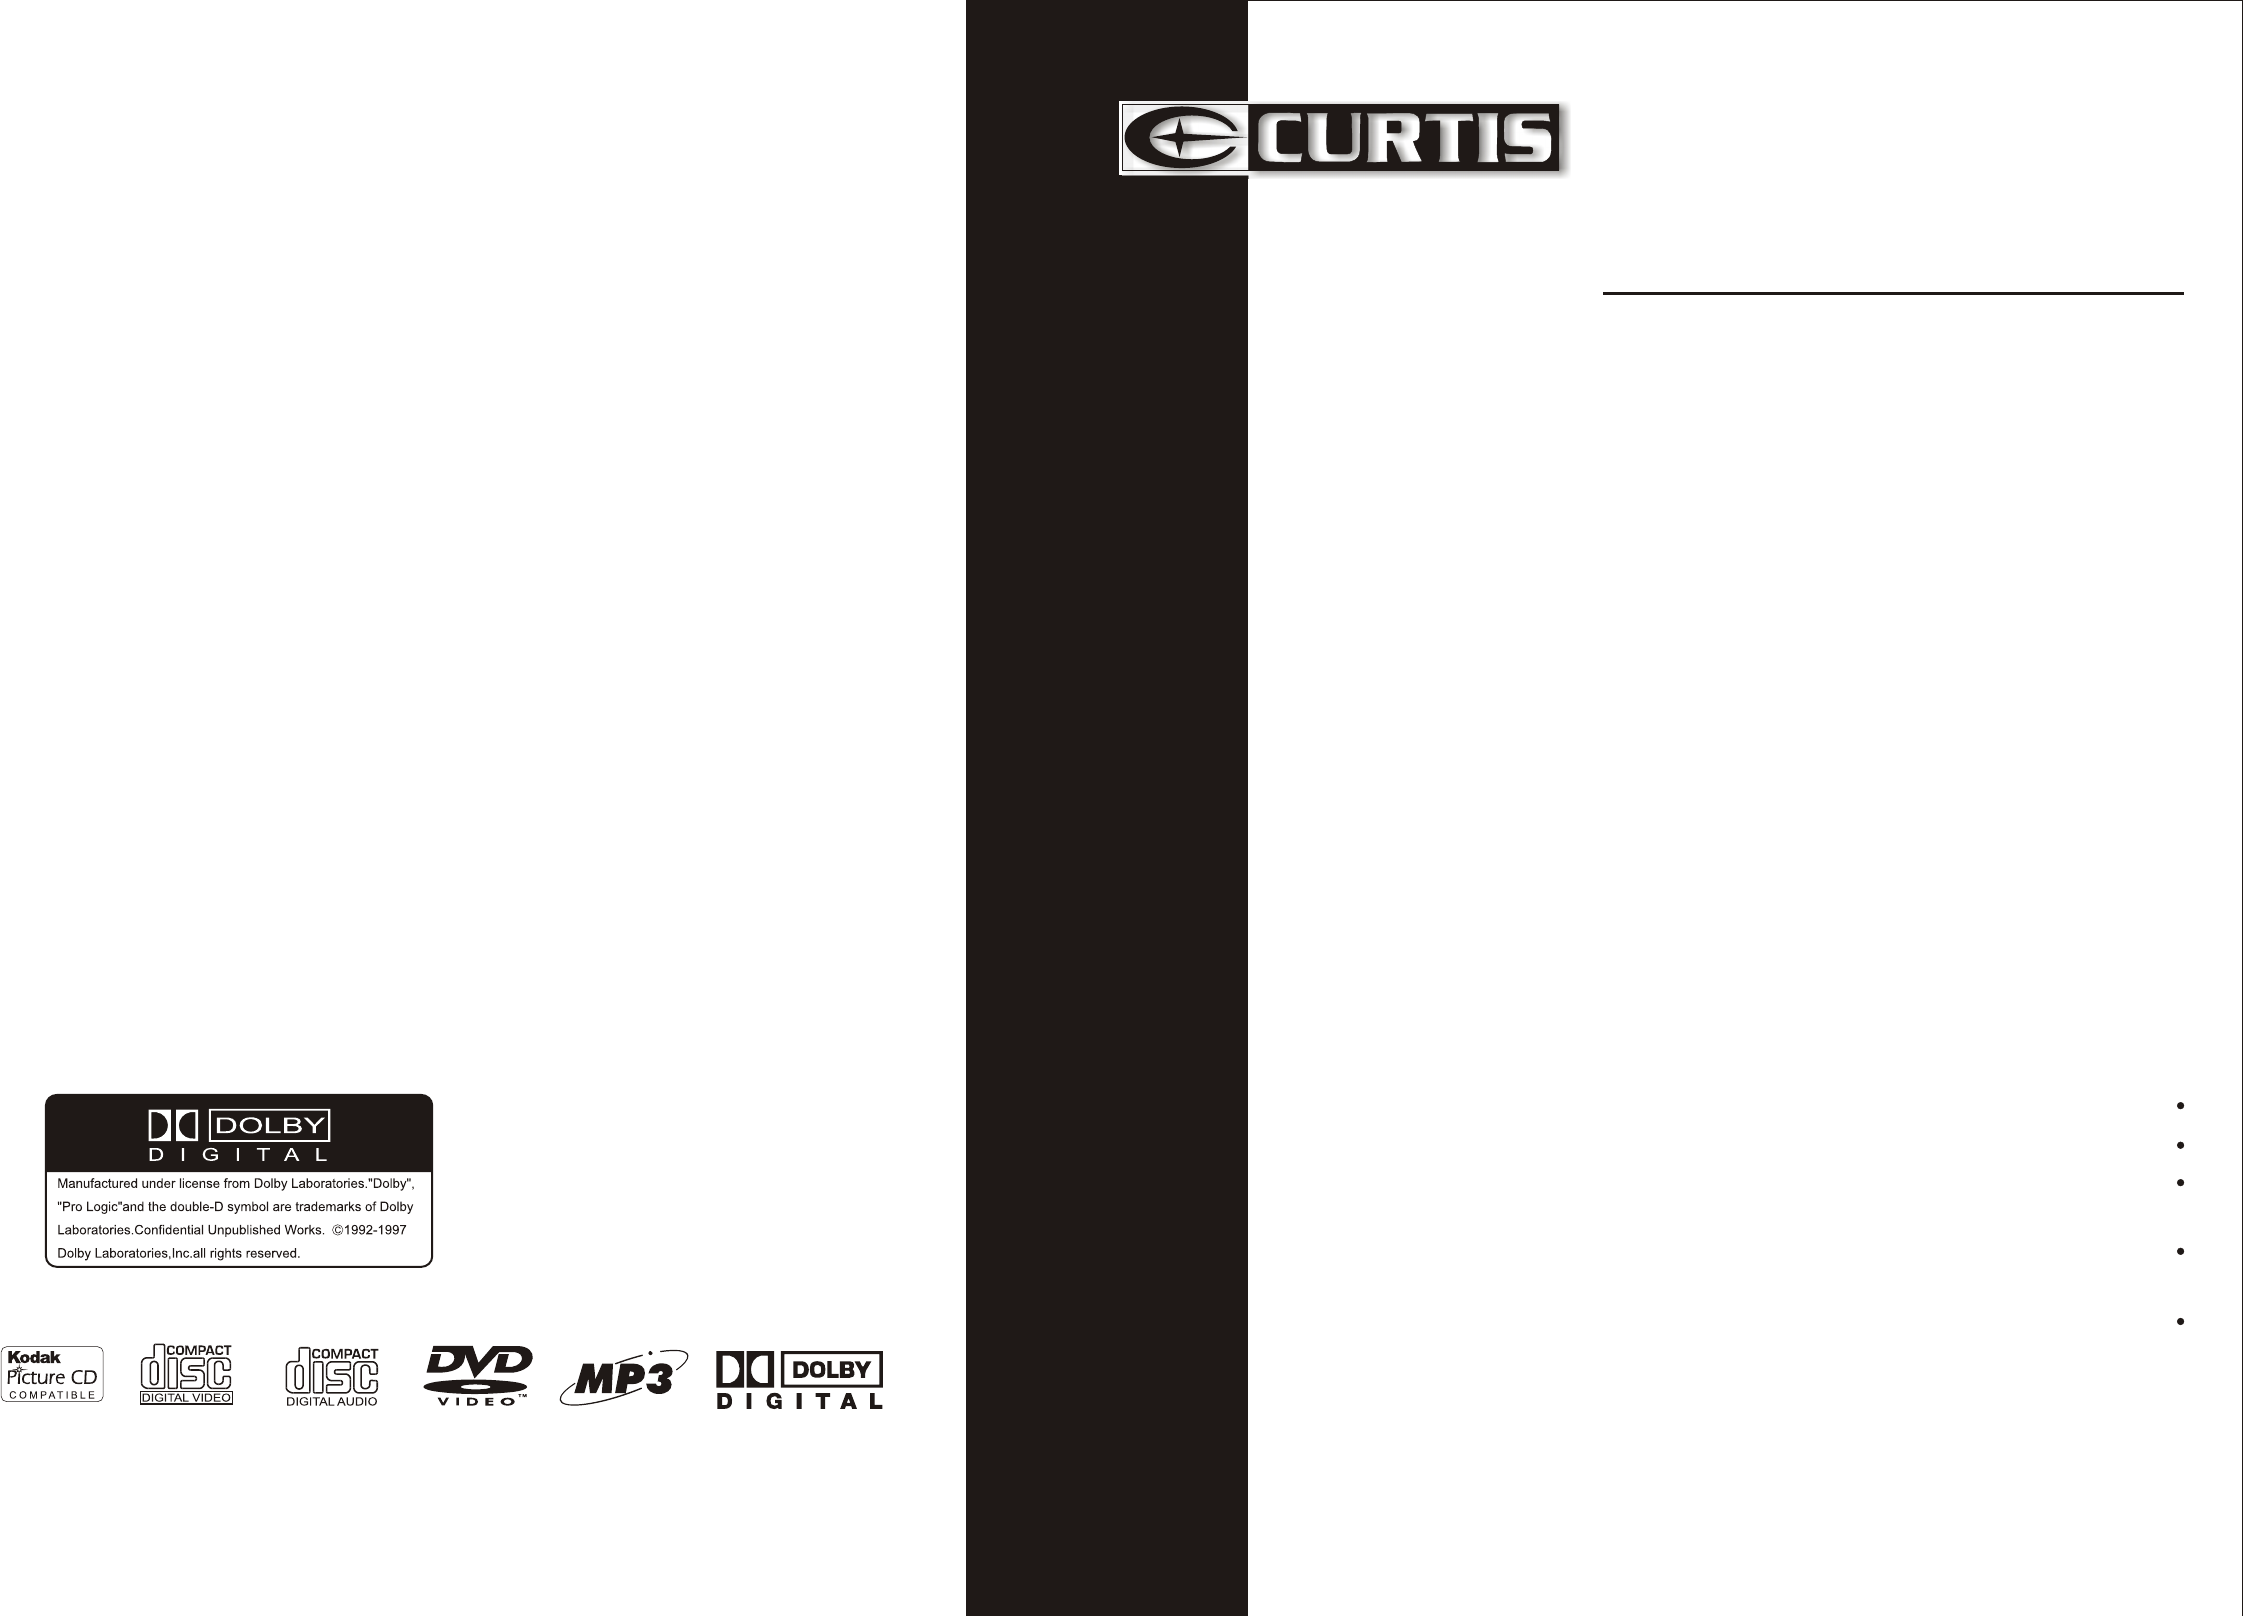 Curtis Home Theater System Dvd5038 User Guide